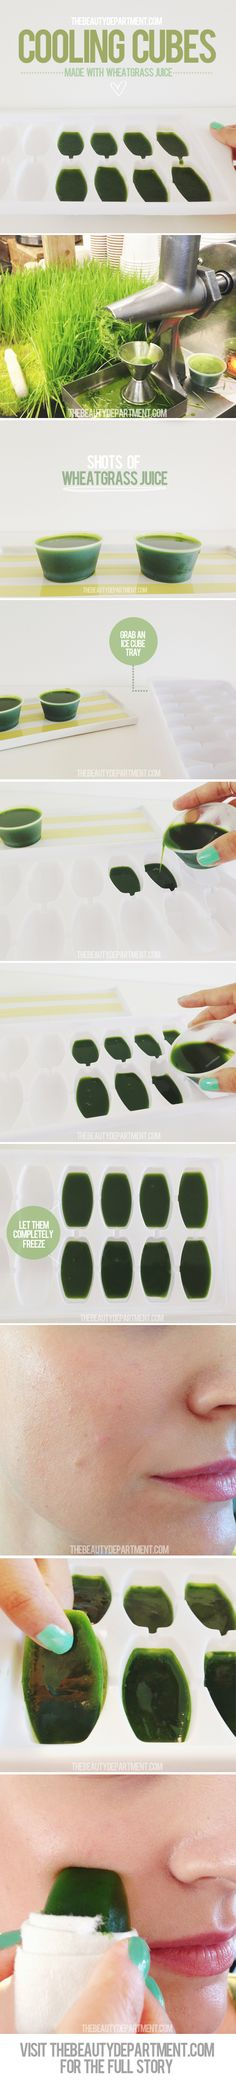 Time for a simple DIY with some wheatgrass juice! Visit TBD for a brief snippet about the healing benefits and for the full tutorial!